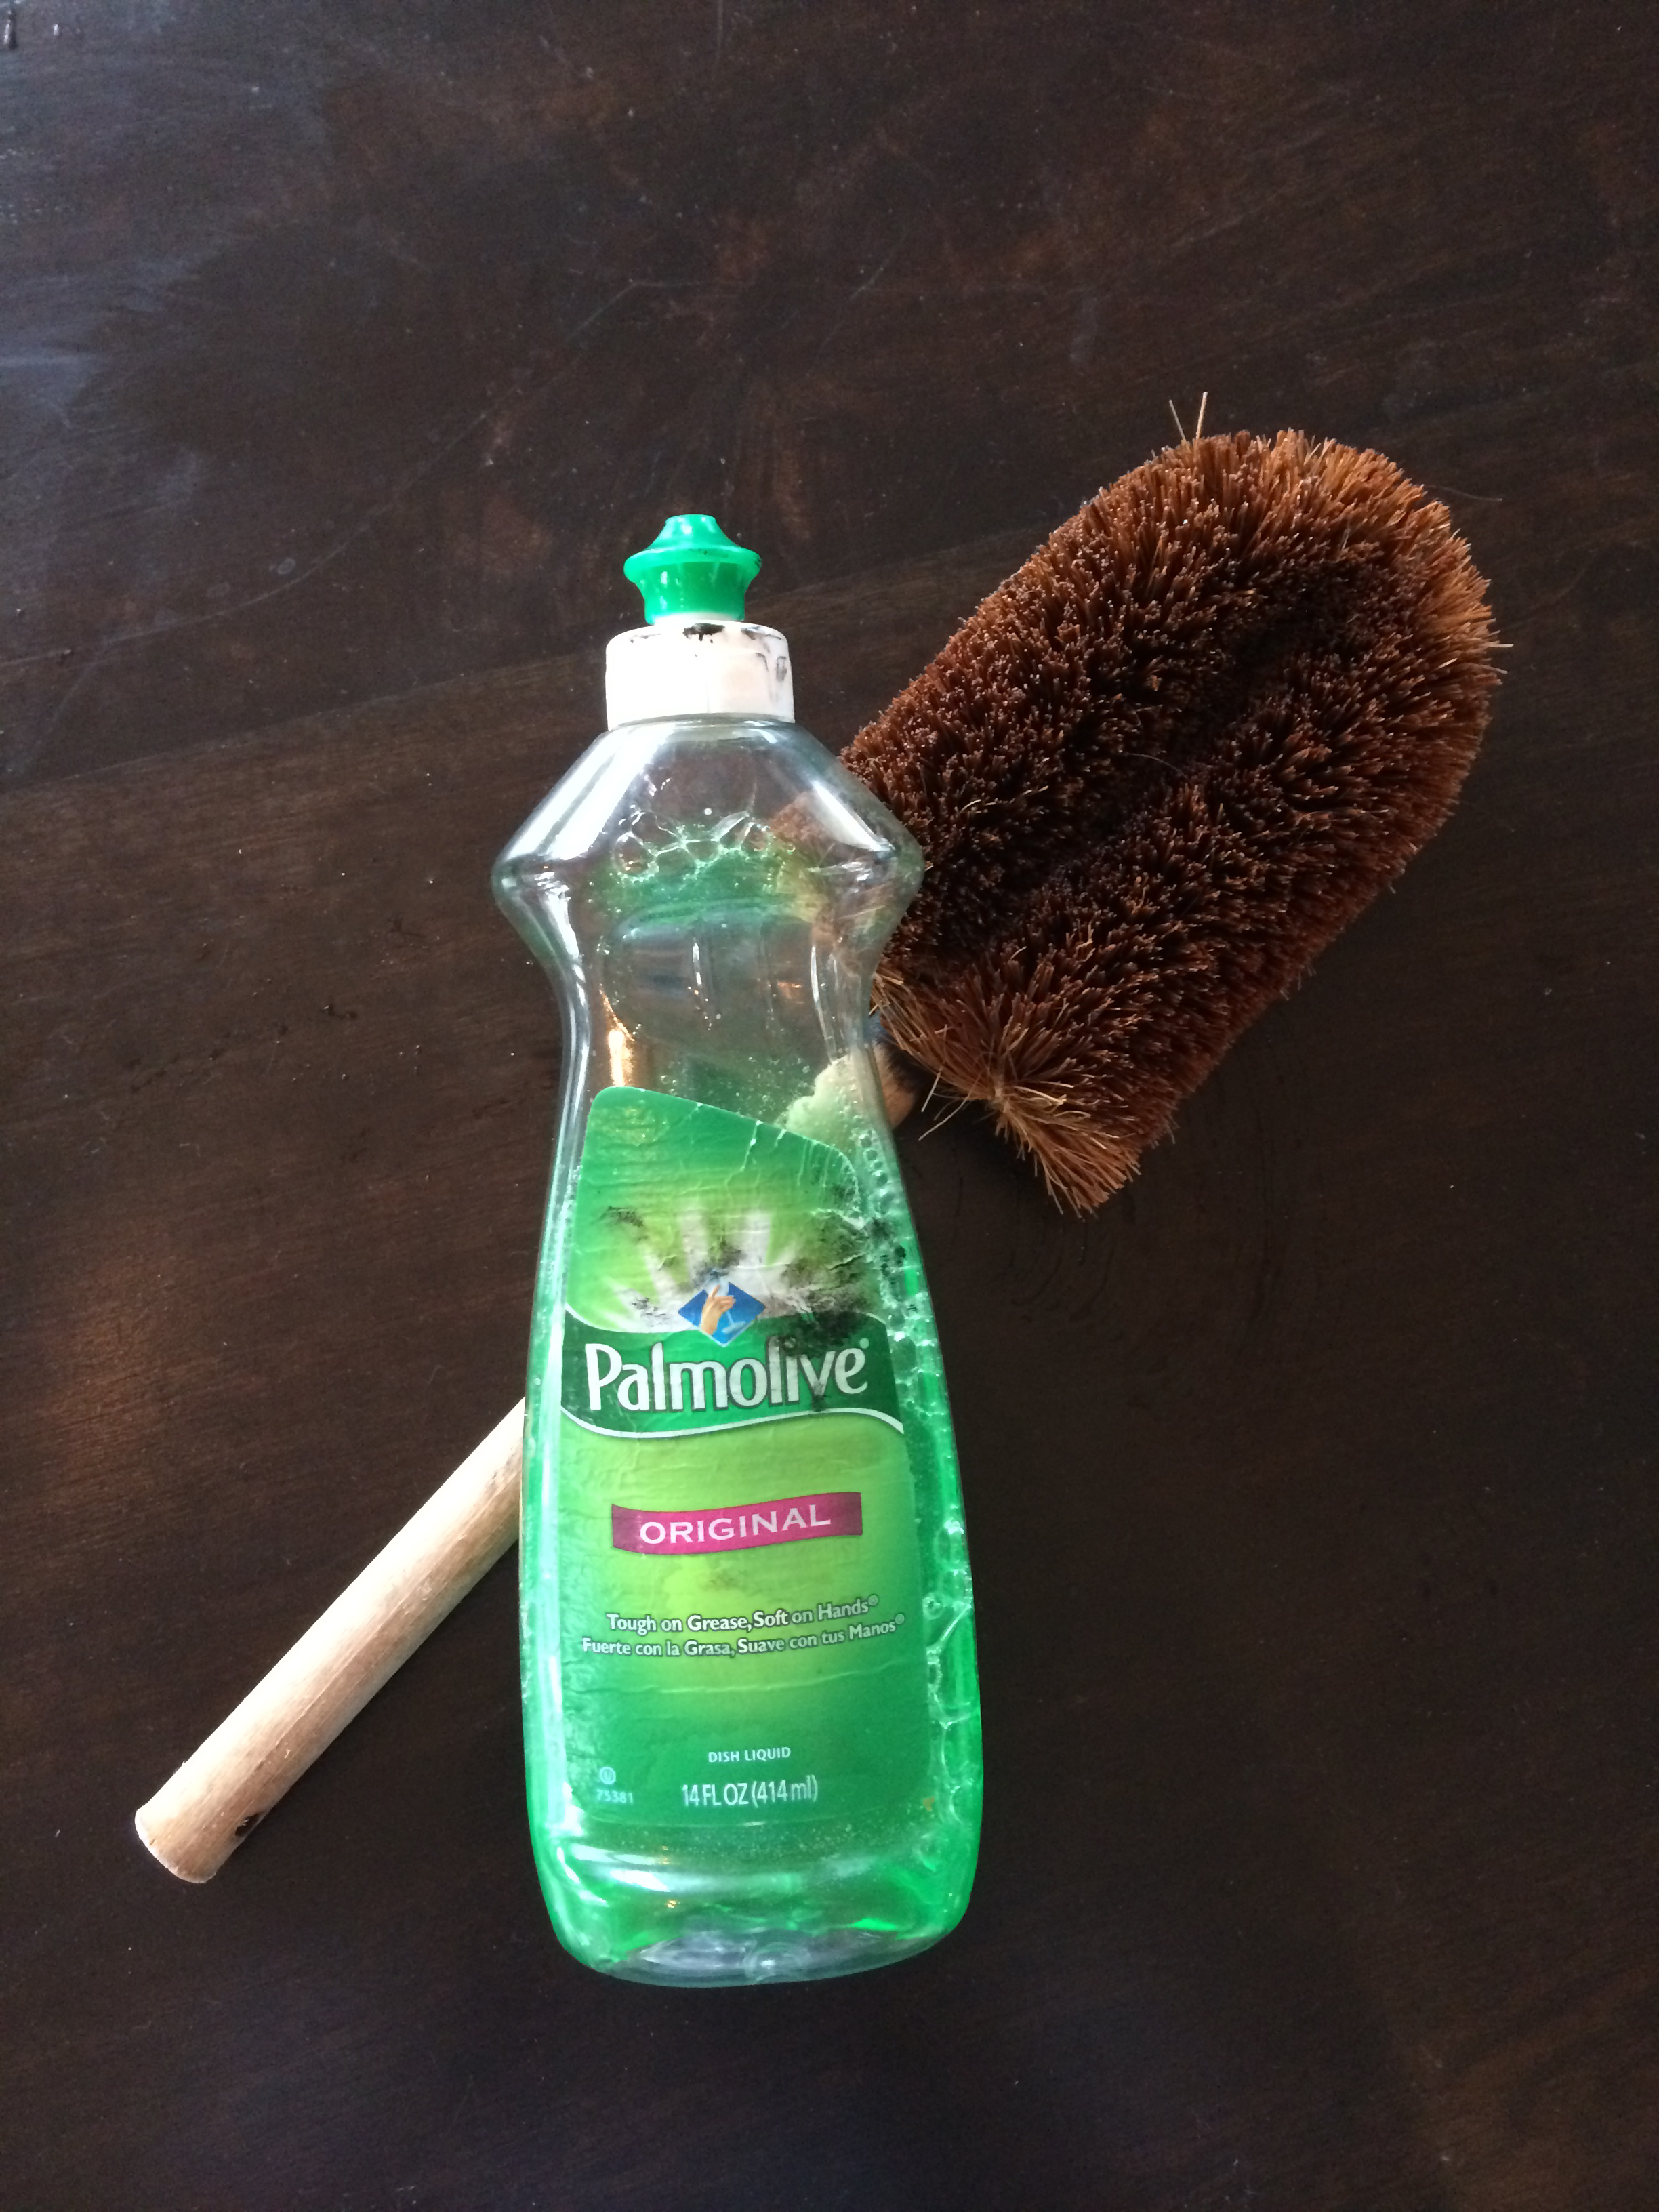 My magic stain cleaning weapons